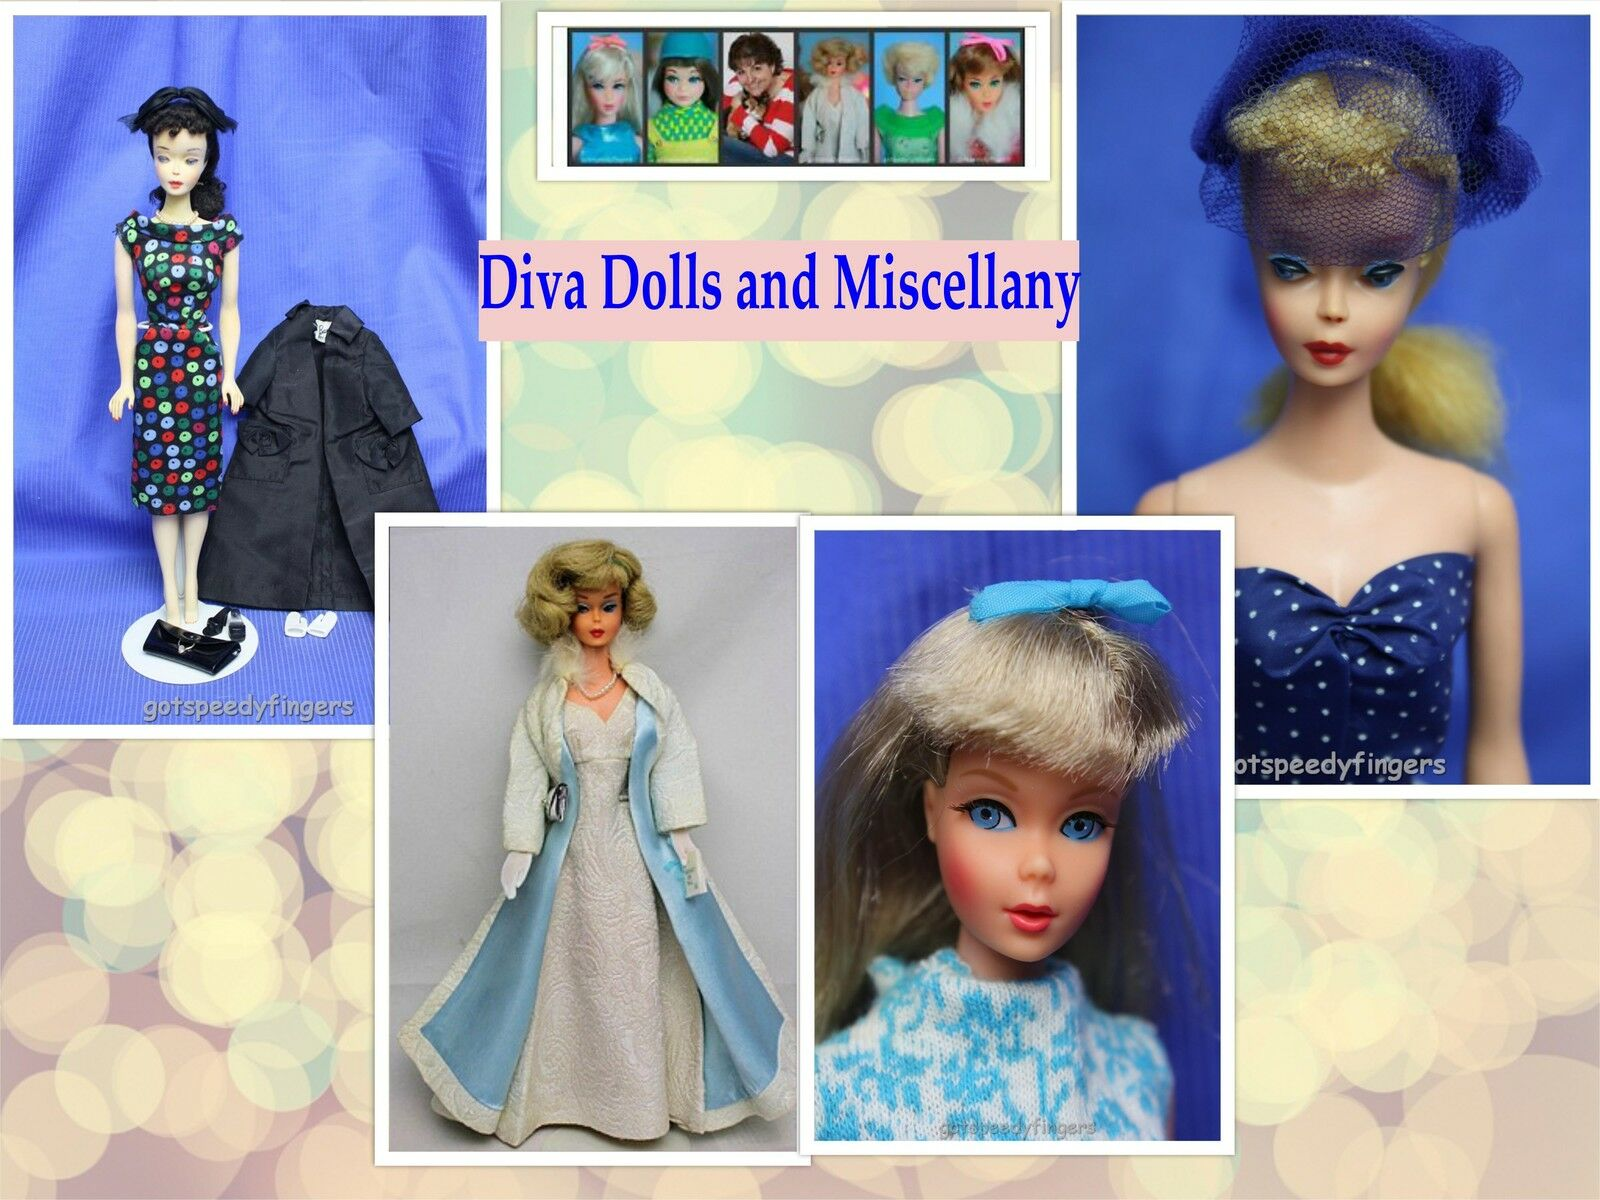 Diva Dolls and Miscellany